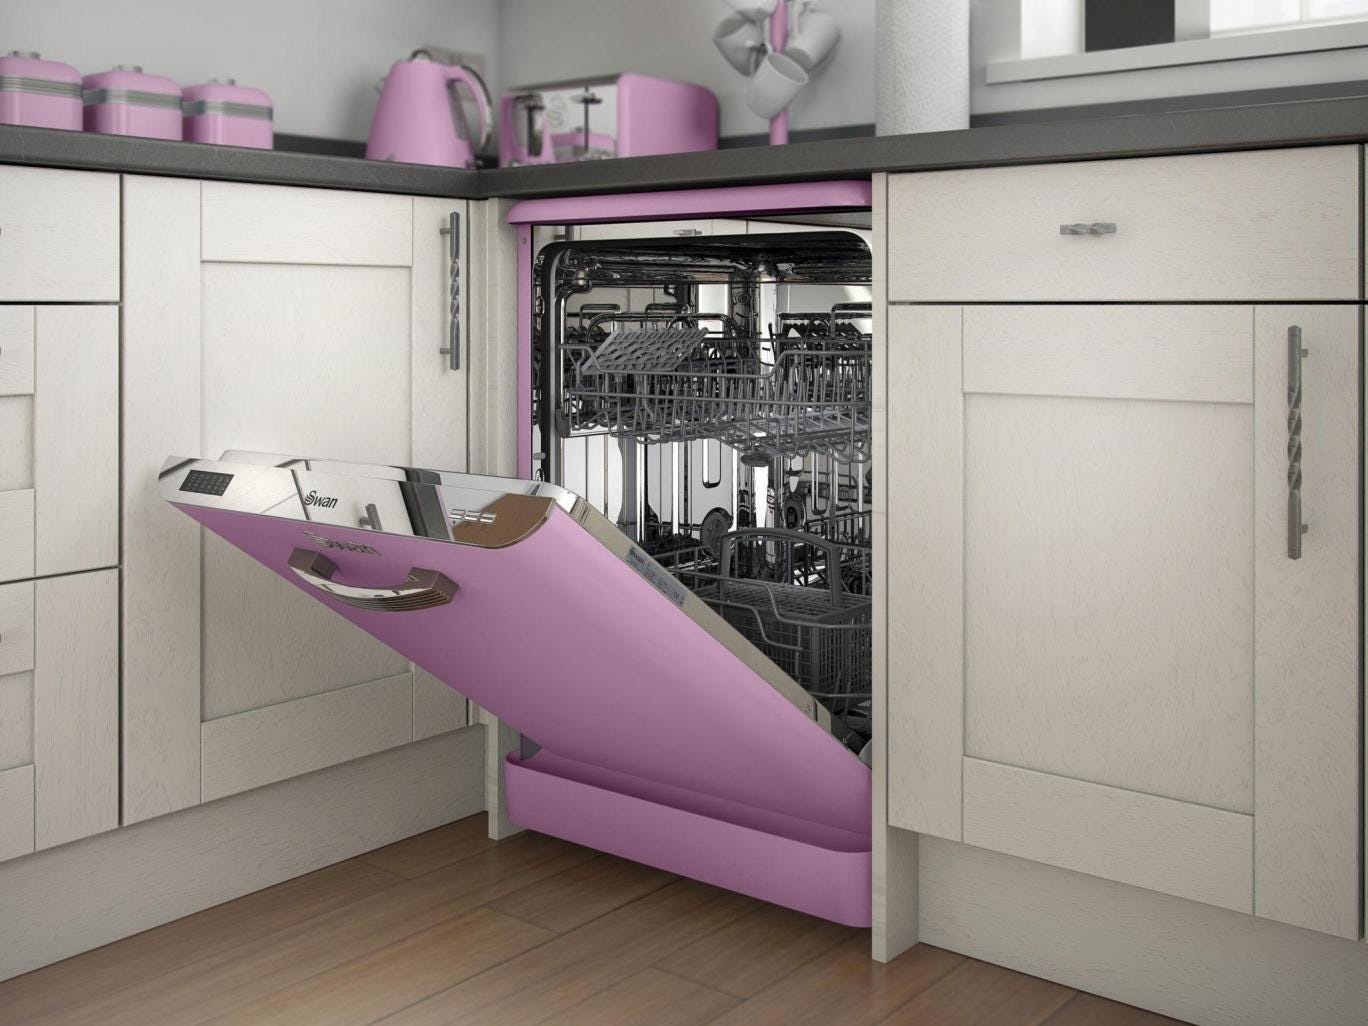 How To Clean The Inside Of A Stainless Steel Dishwasher 10 Best Dishwashers The Independent